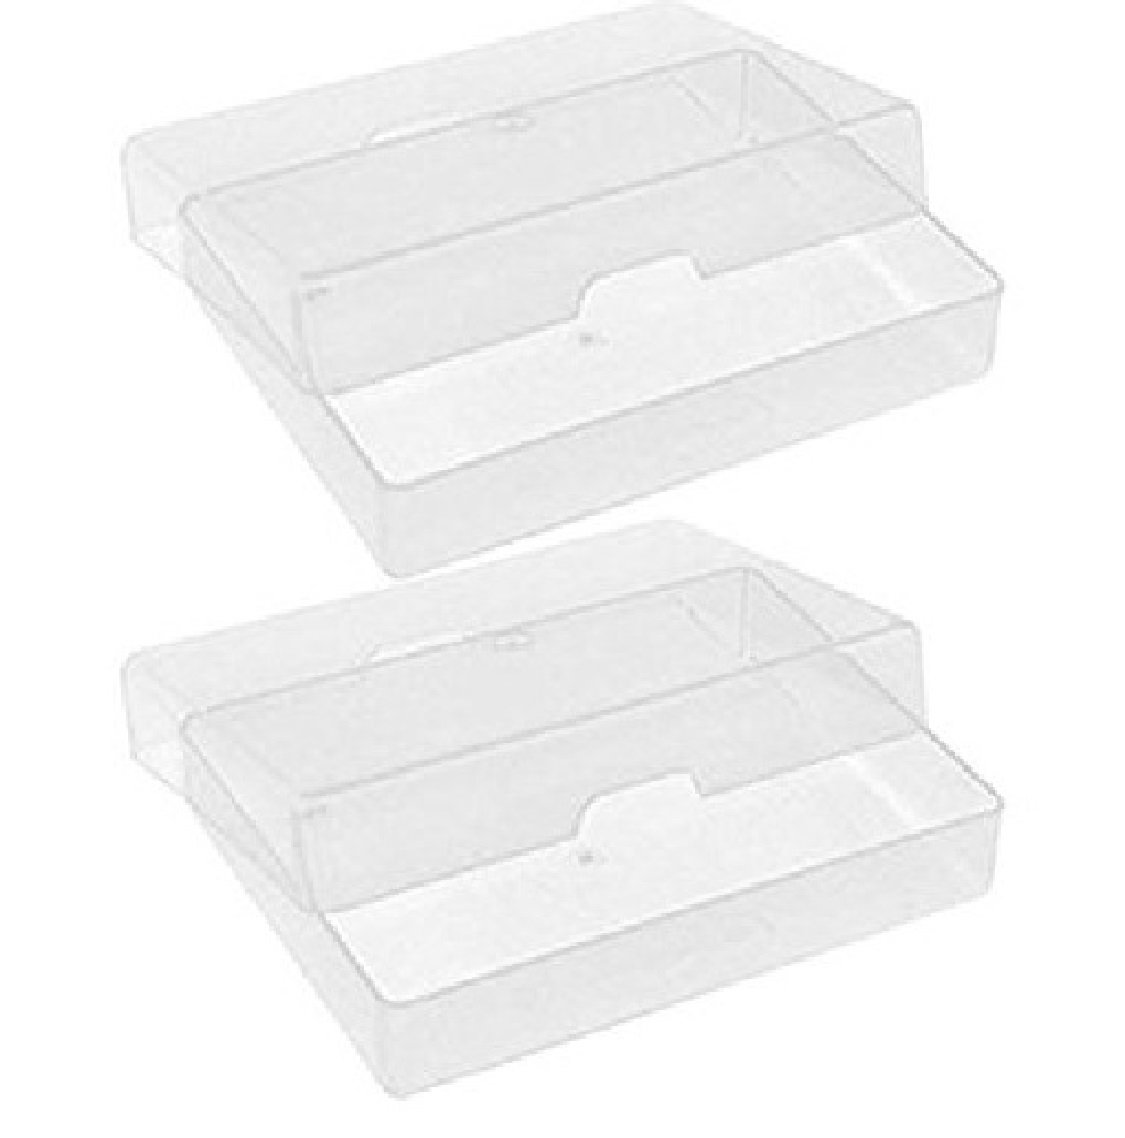 2 X NEW ATC CLEAR PLASTIC STORAGE BOX PLAYING CARDS CASE BUSINESS ...